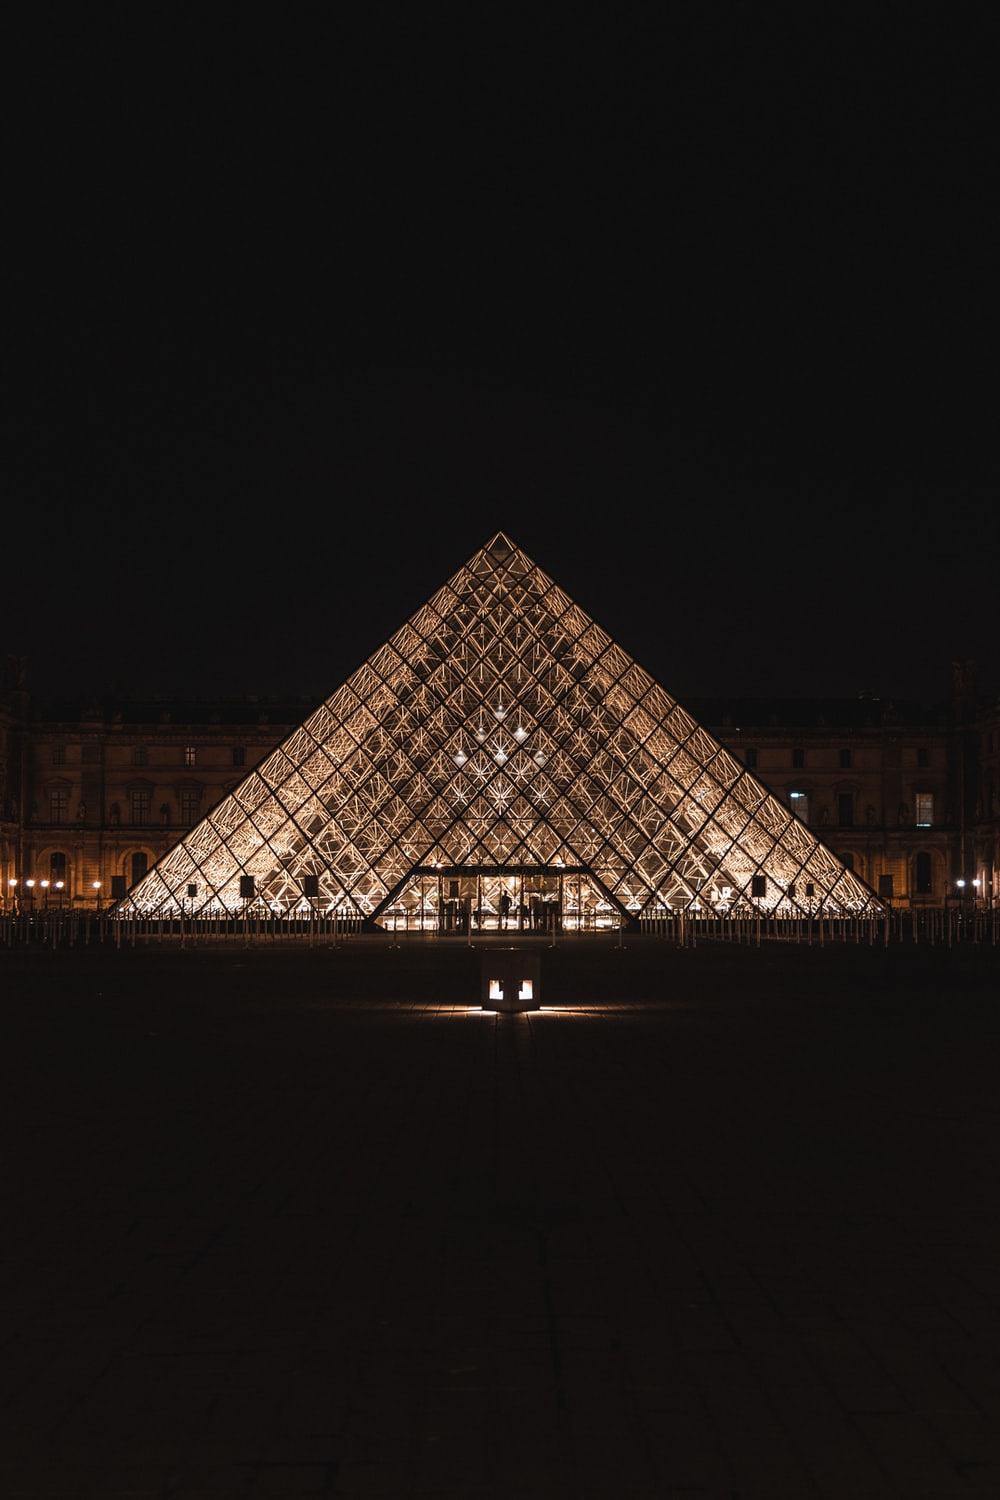 black and white pyramid building during night time